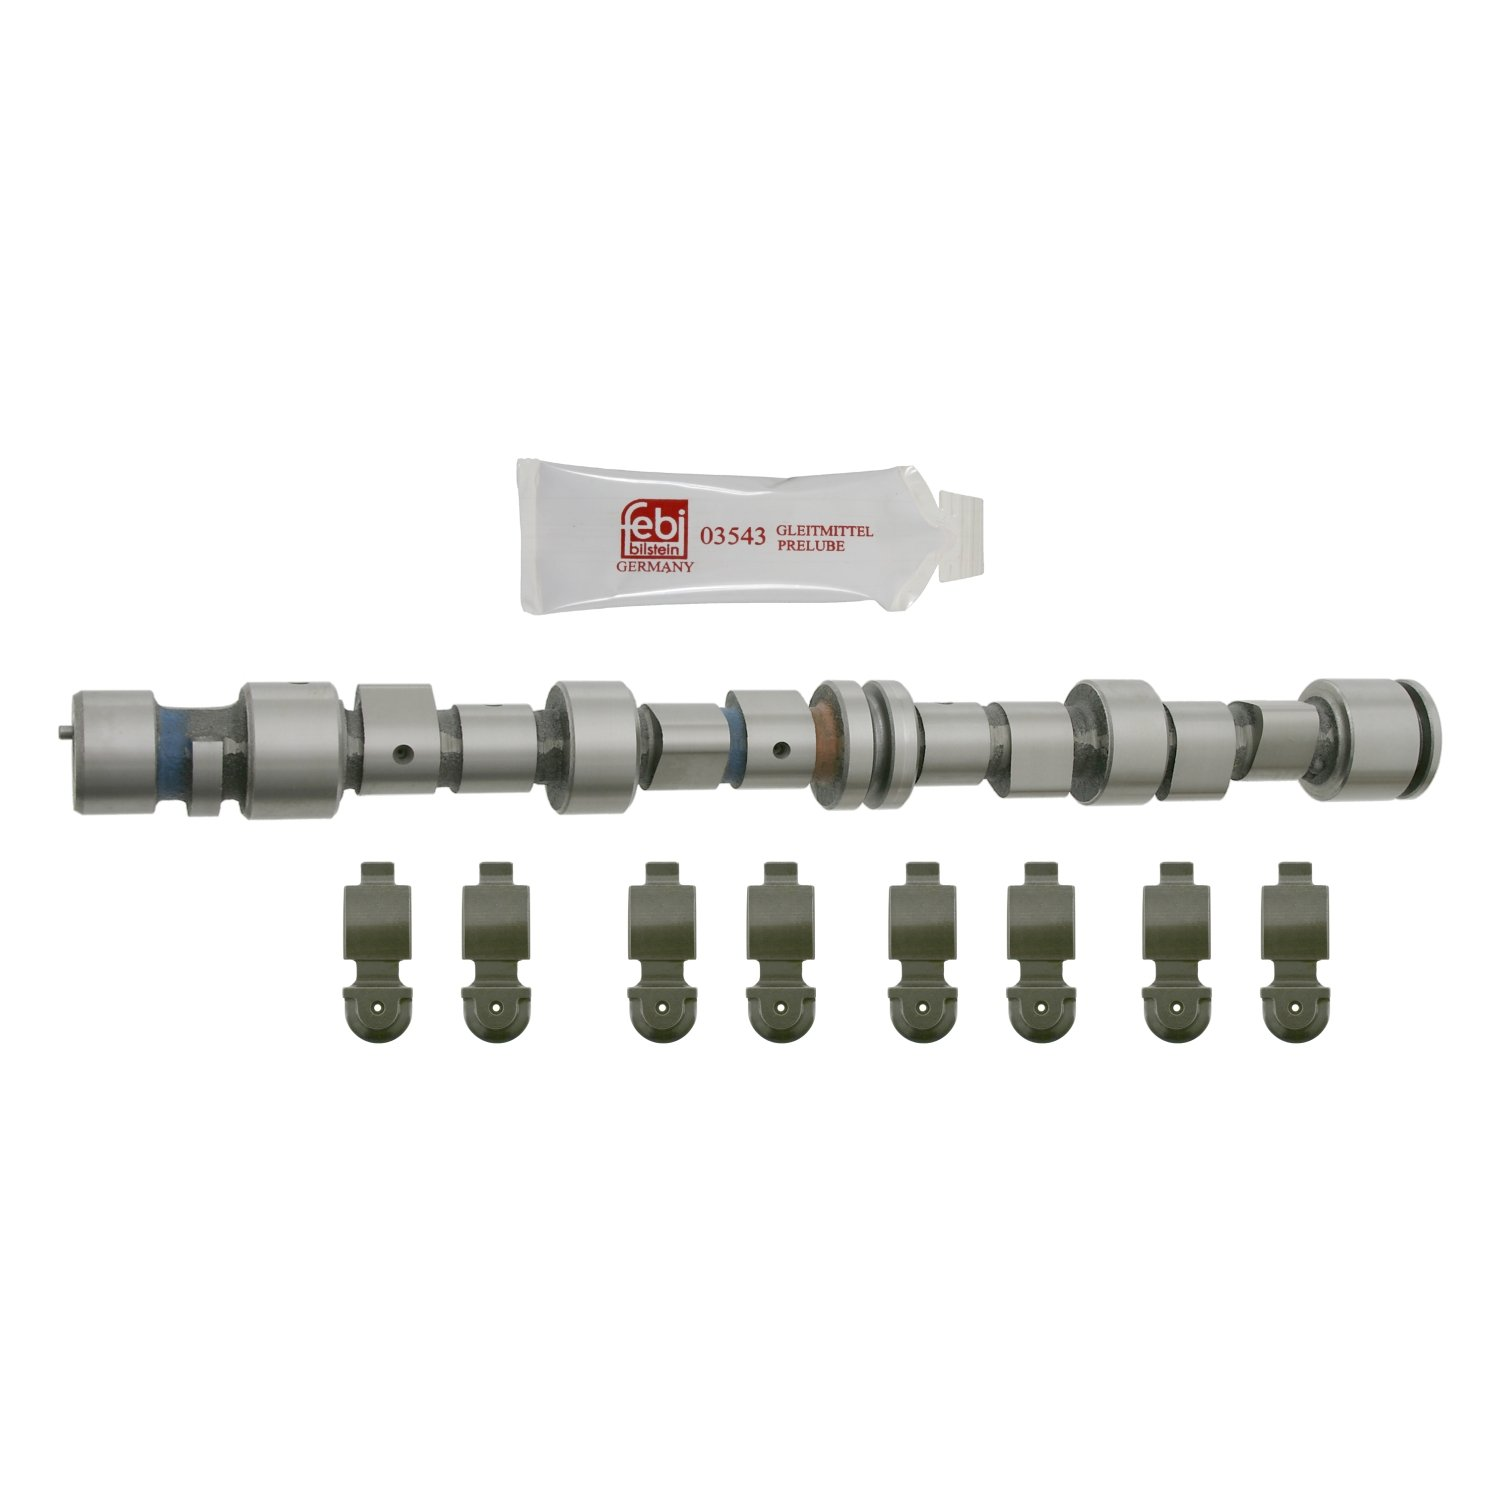 febi bilstein 24549 camshaft kit  - Pack of 1